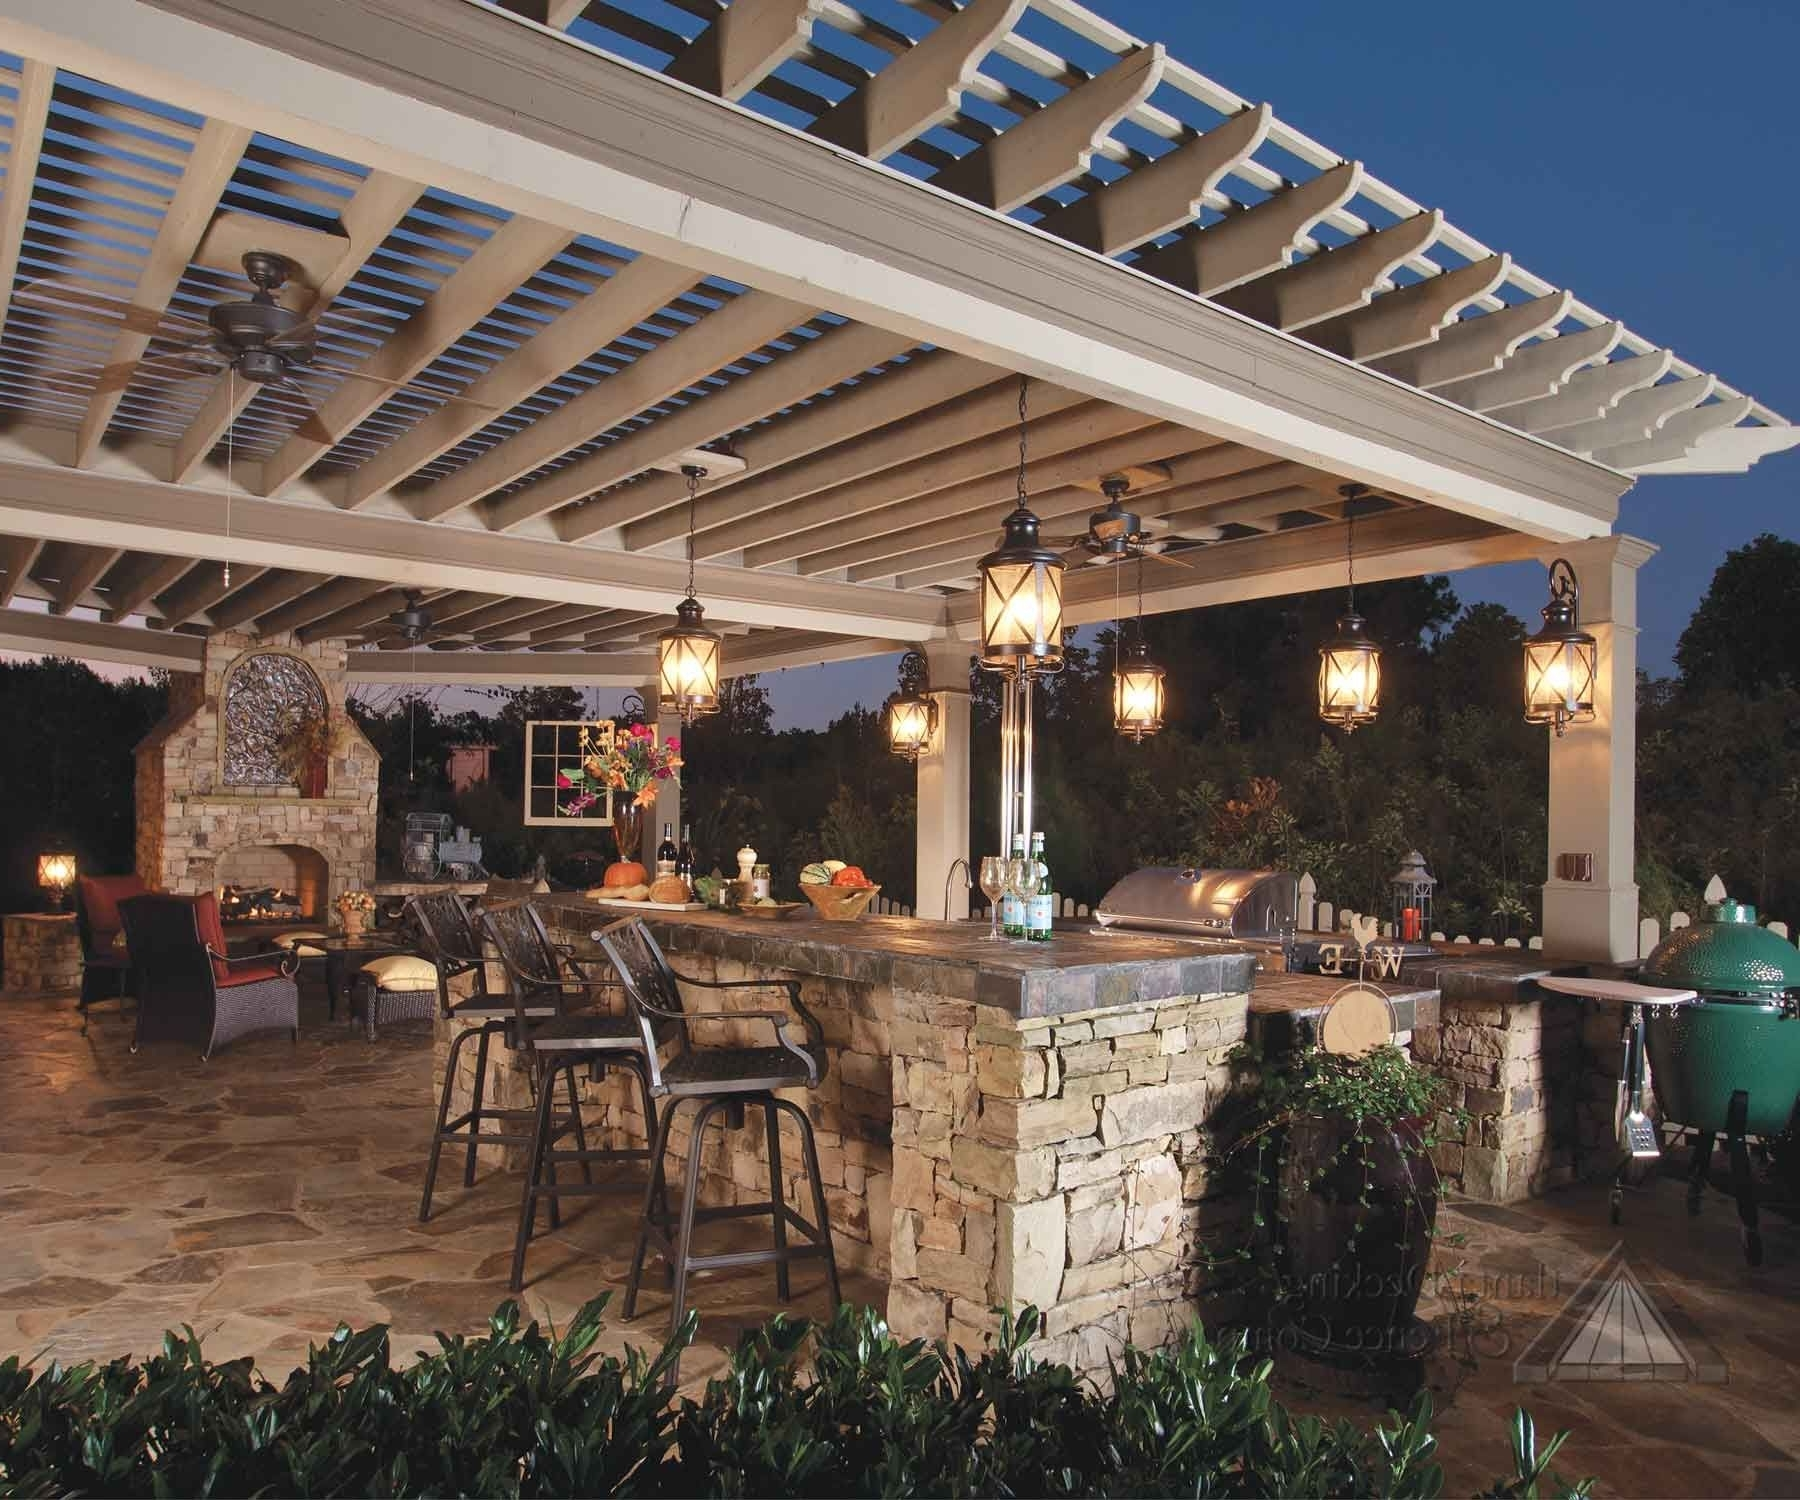 Outdoor Ceiling Fans Under Pergola For 2019 The Serving Area May Have A Raised Bar With Stools To Allow Guests (Gallery 14 of 20)